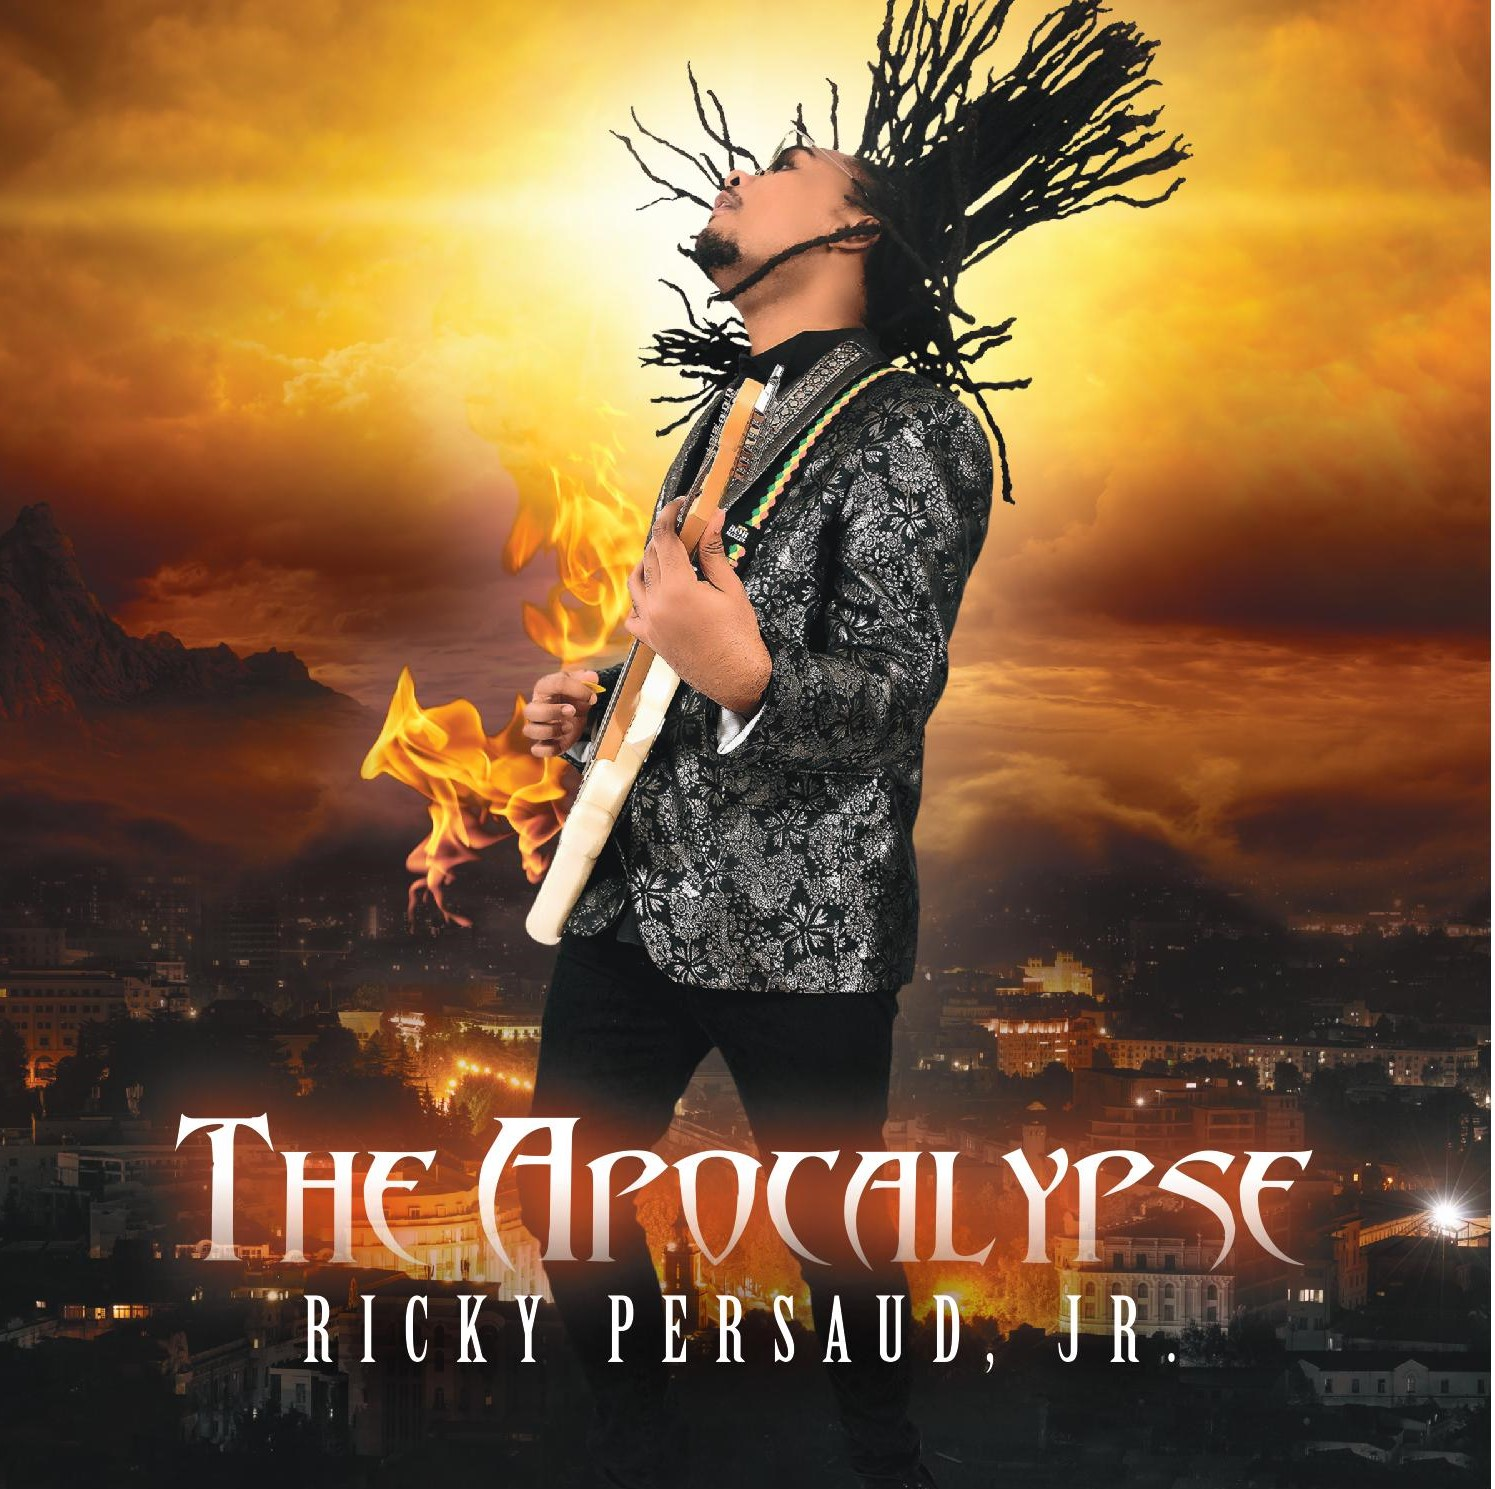 Ricky Persaud, Jr.